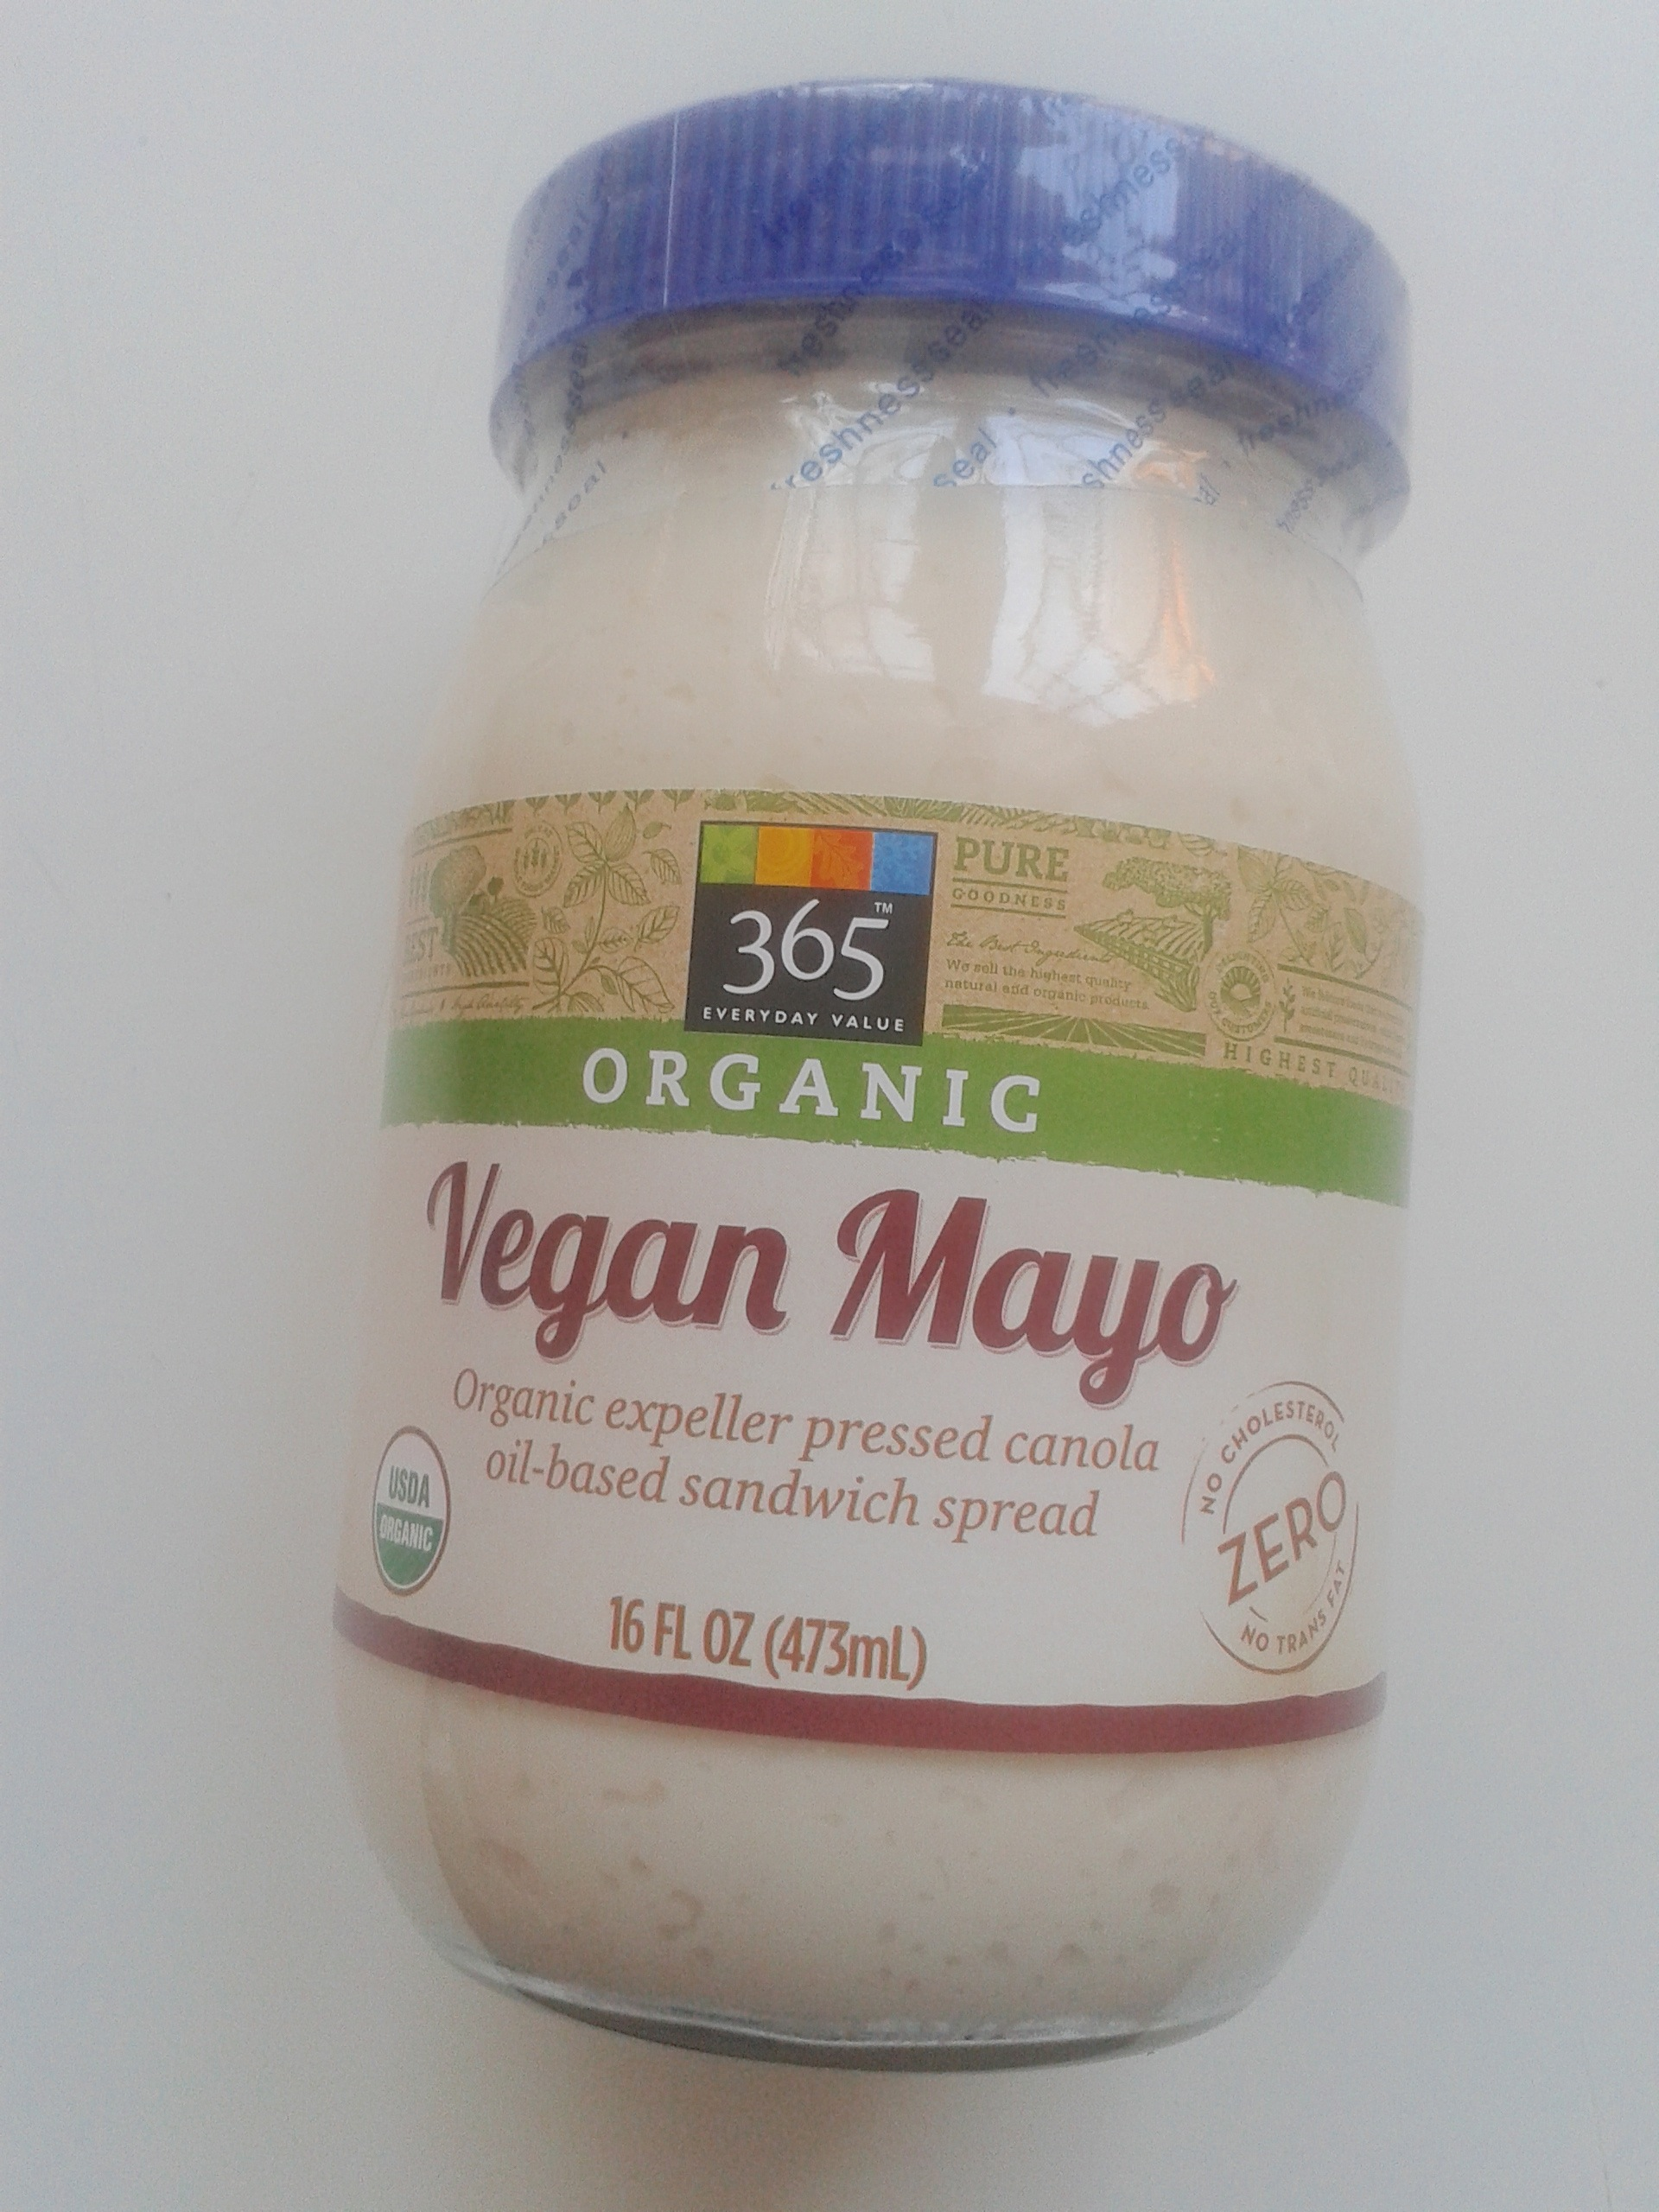 https://i1.wp.com/fatgayvegan.com/wp-content/uploads/2014/03/mayo.jpg?fit=1920%2C2560